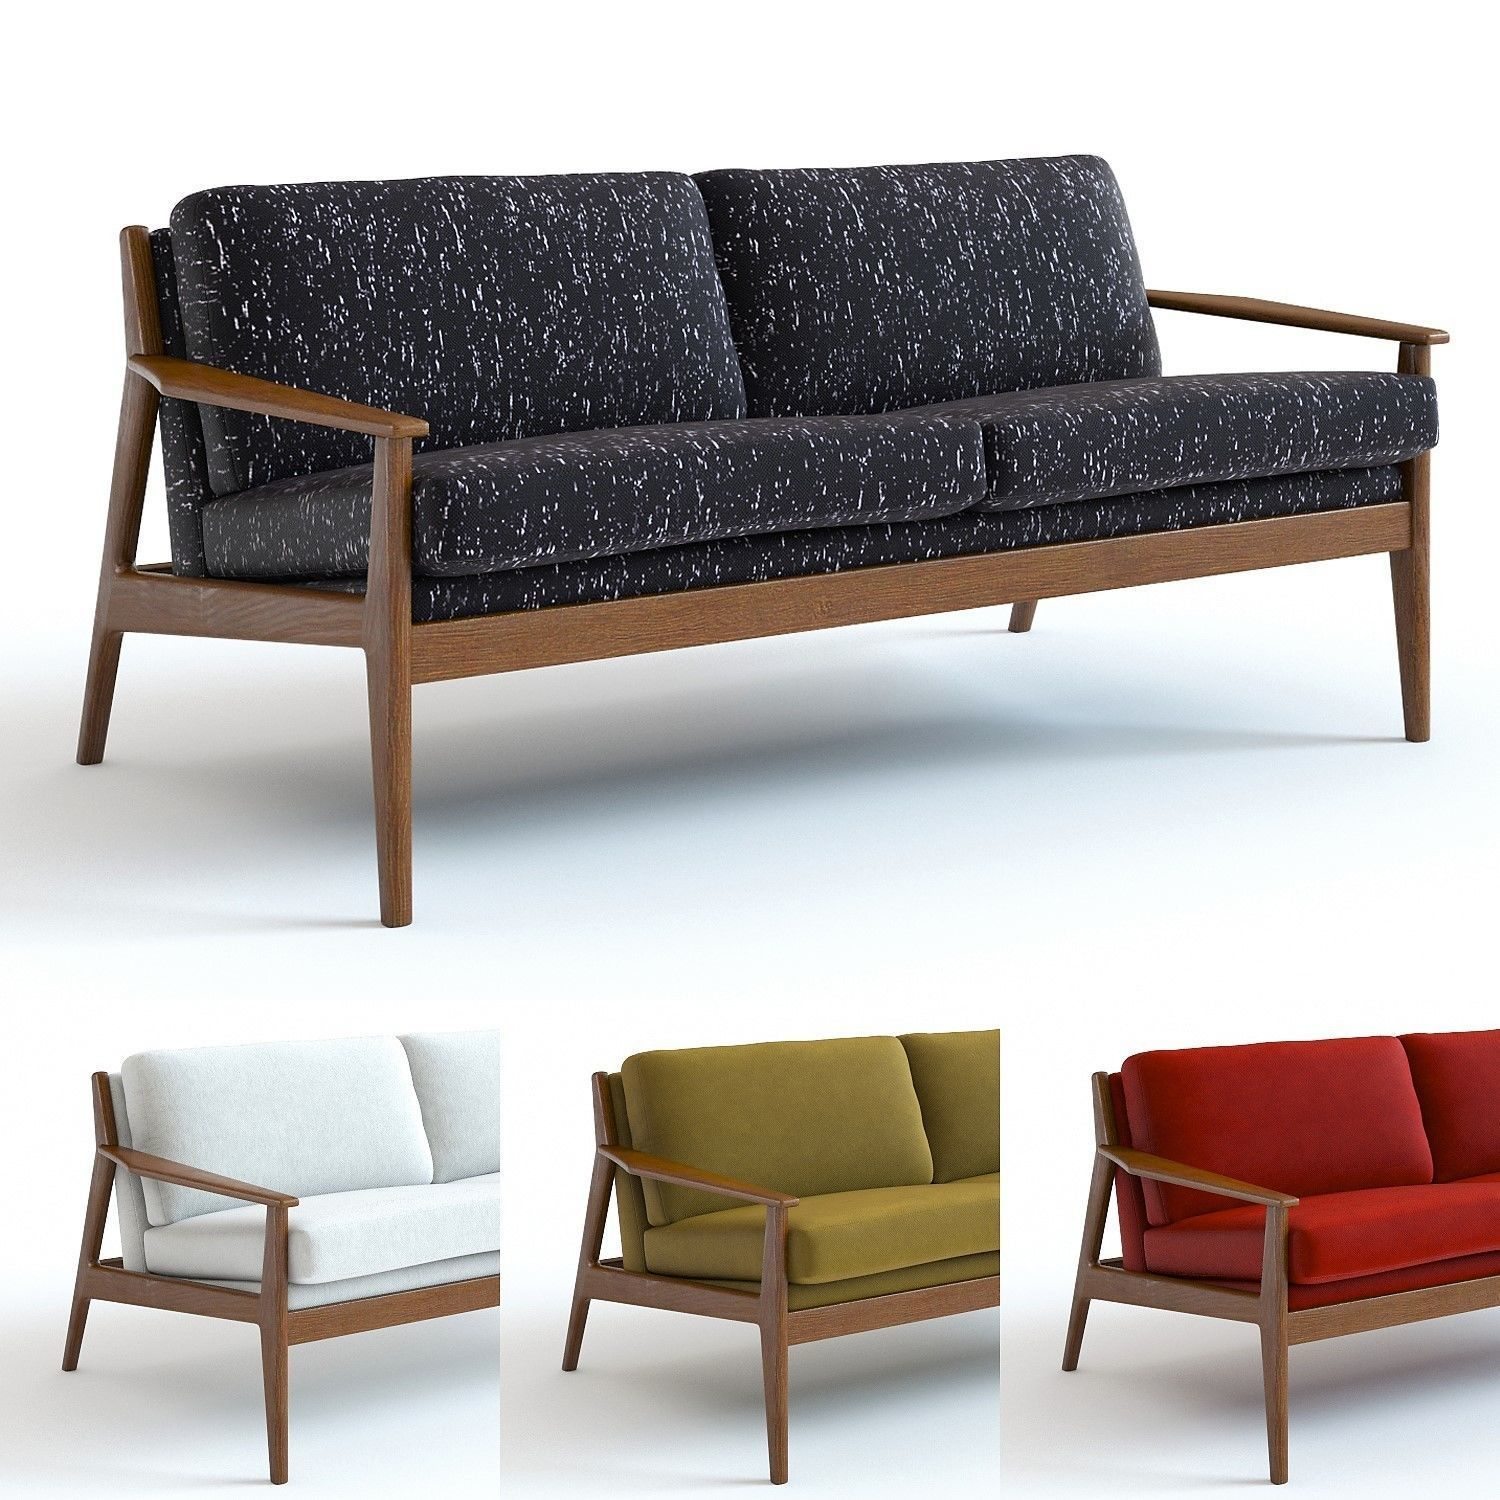 Remarkable West Elm Mathias Loveseat 3D Model Caraccident5 Cool Chair Designs And Ideas Caraccident5Info